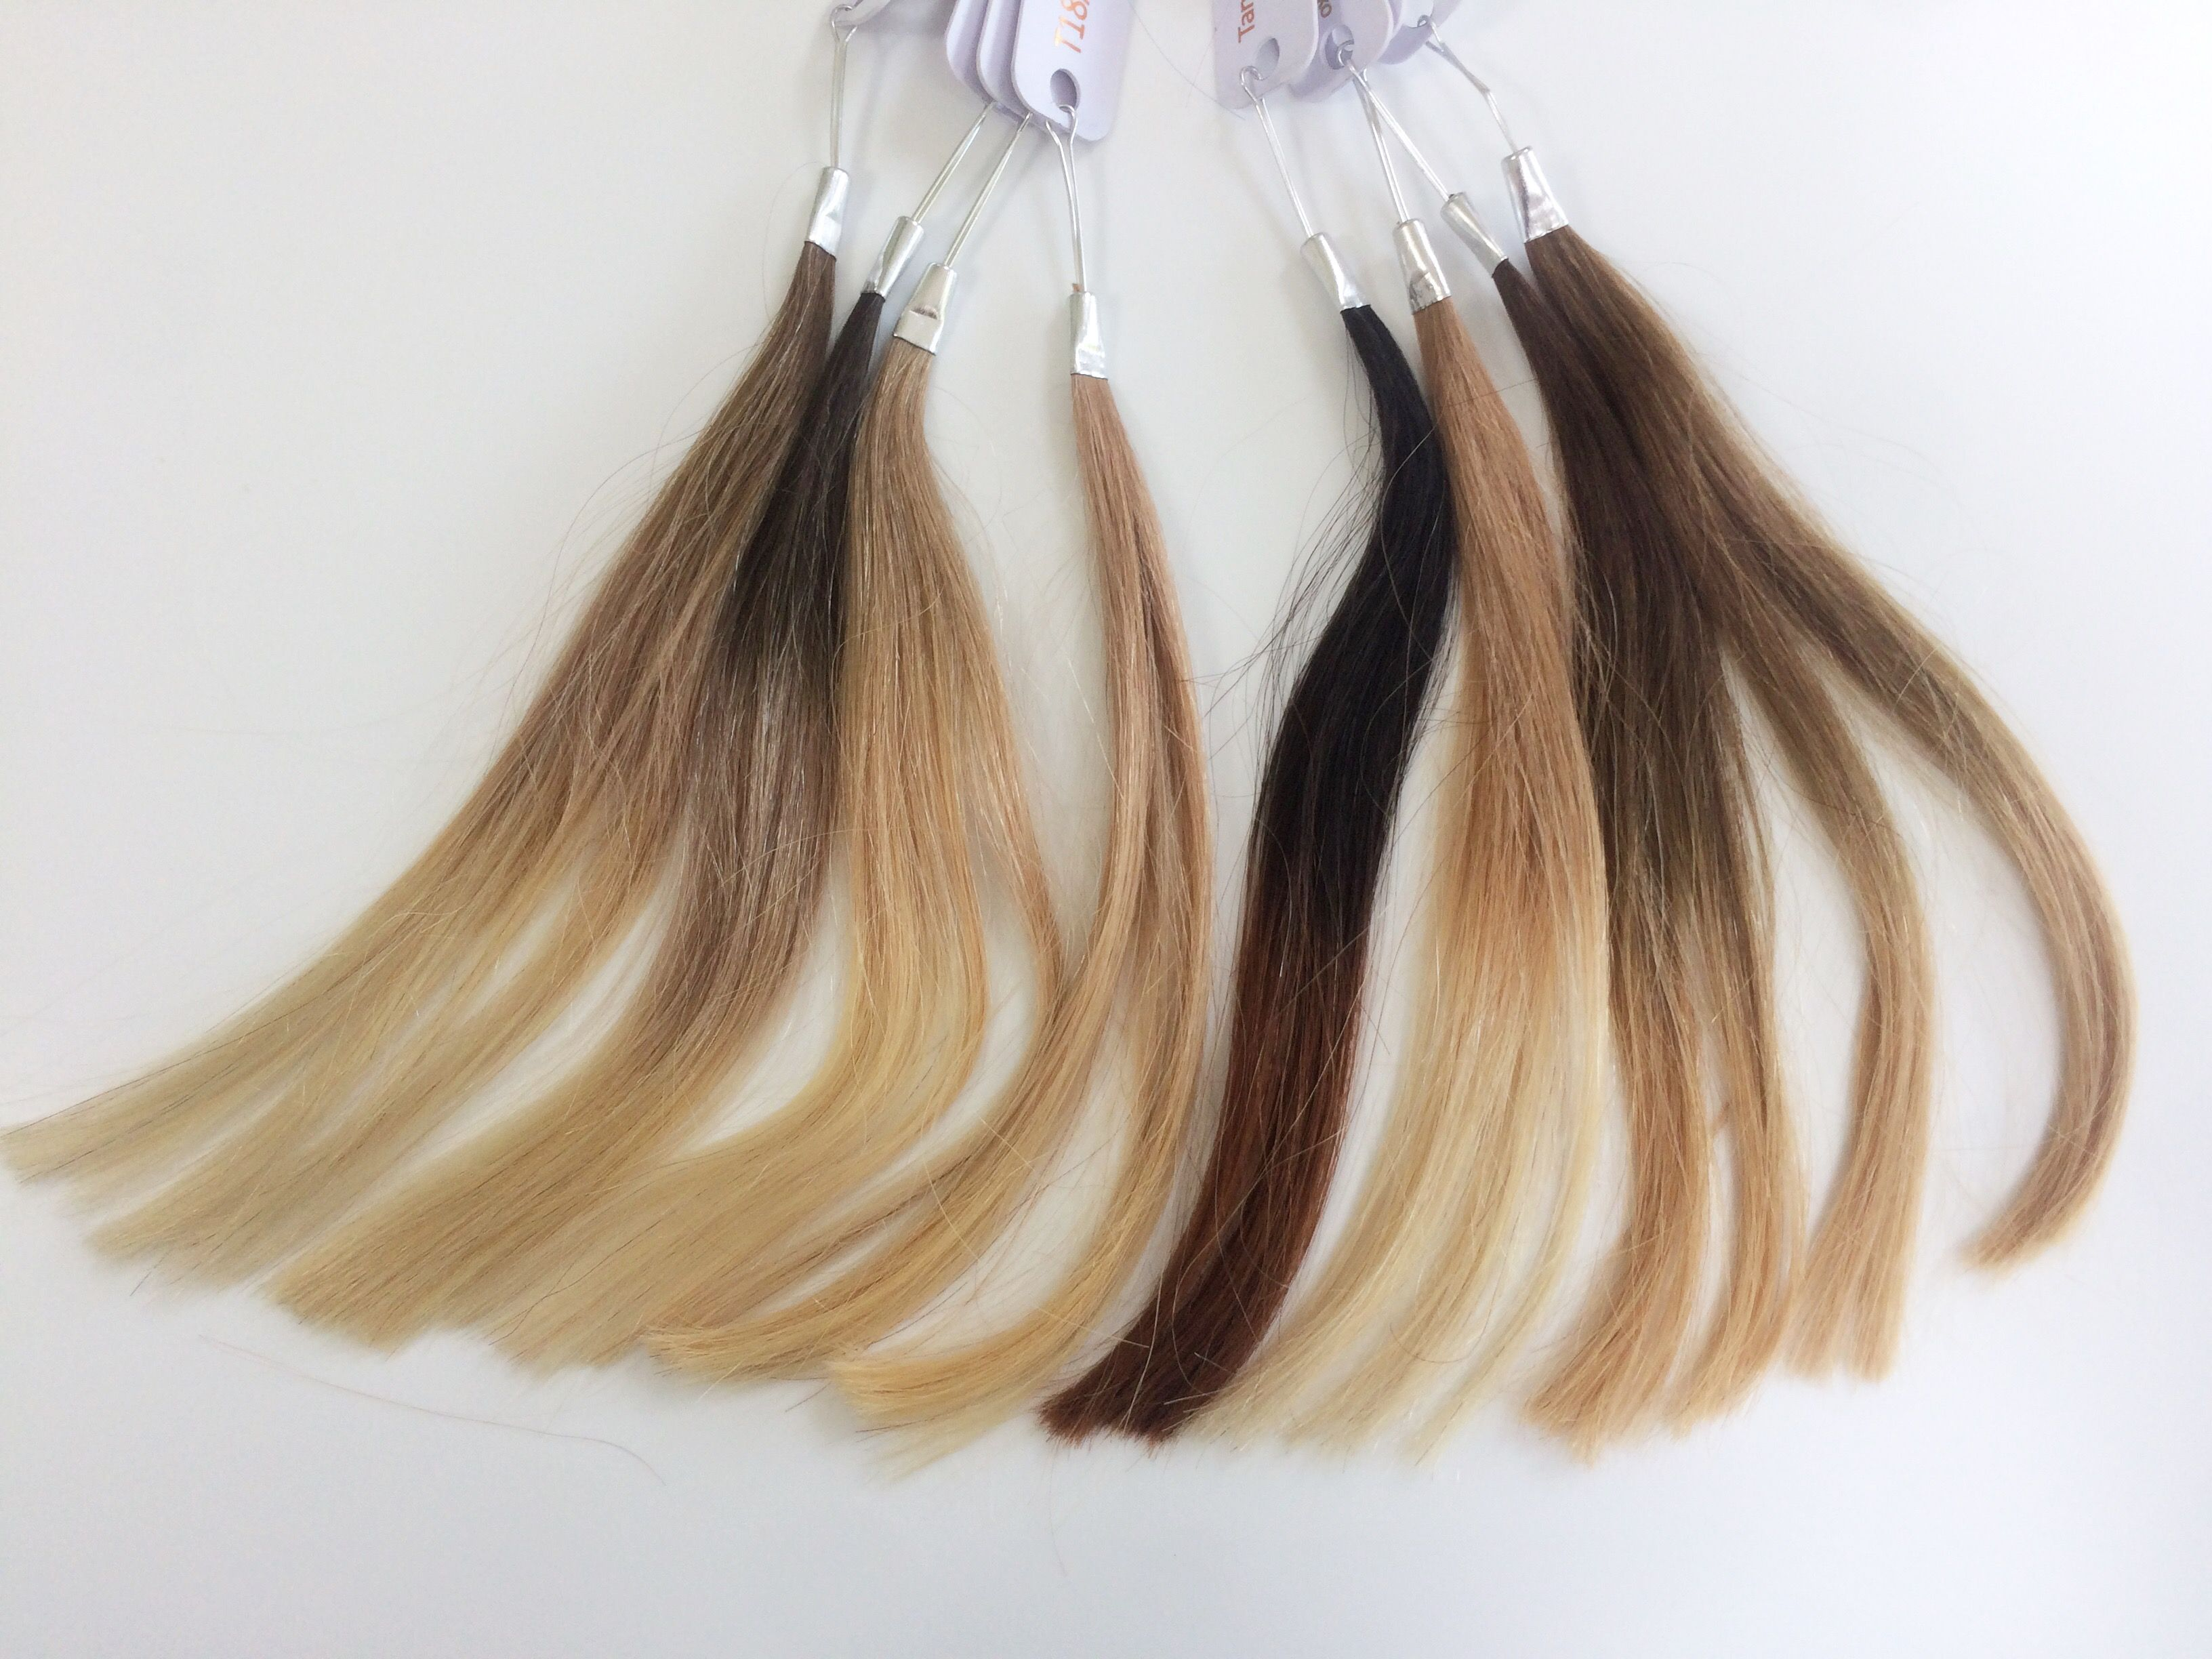 New Ombre Extension Shades By Lucie Locks Extensions Pinterest